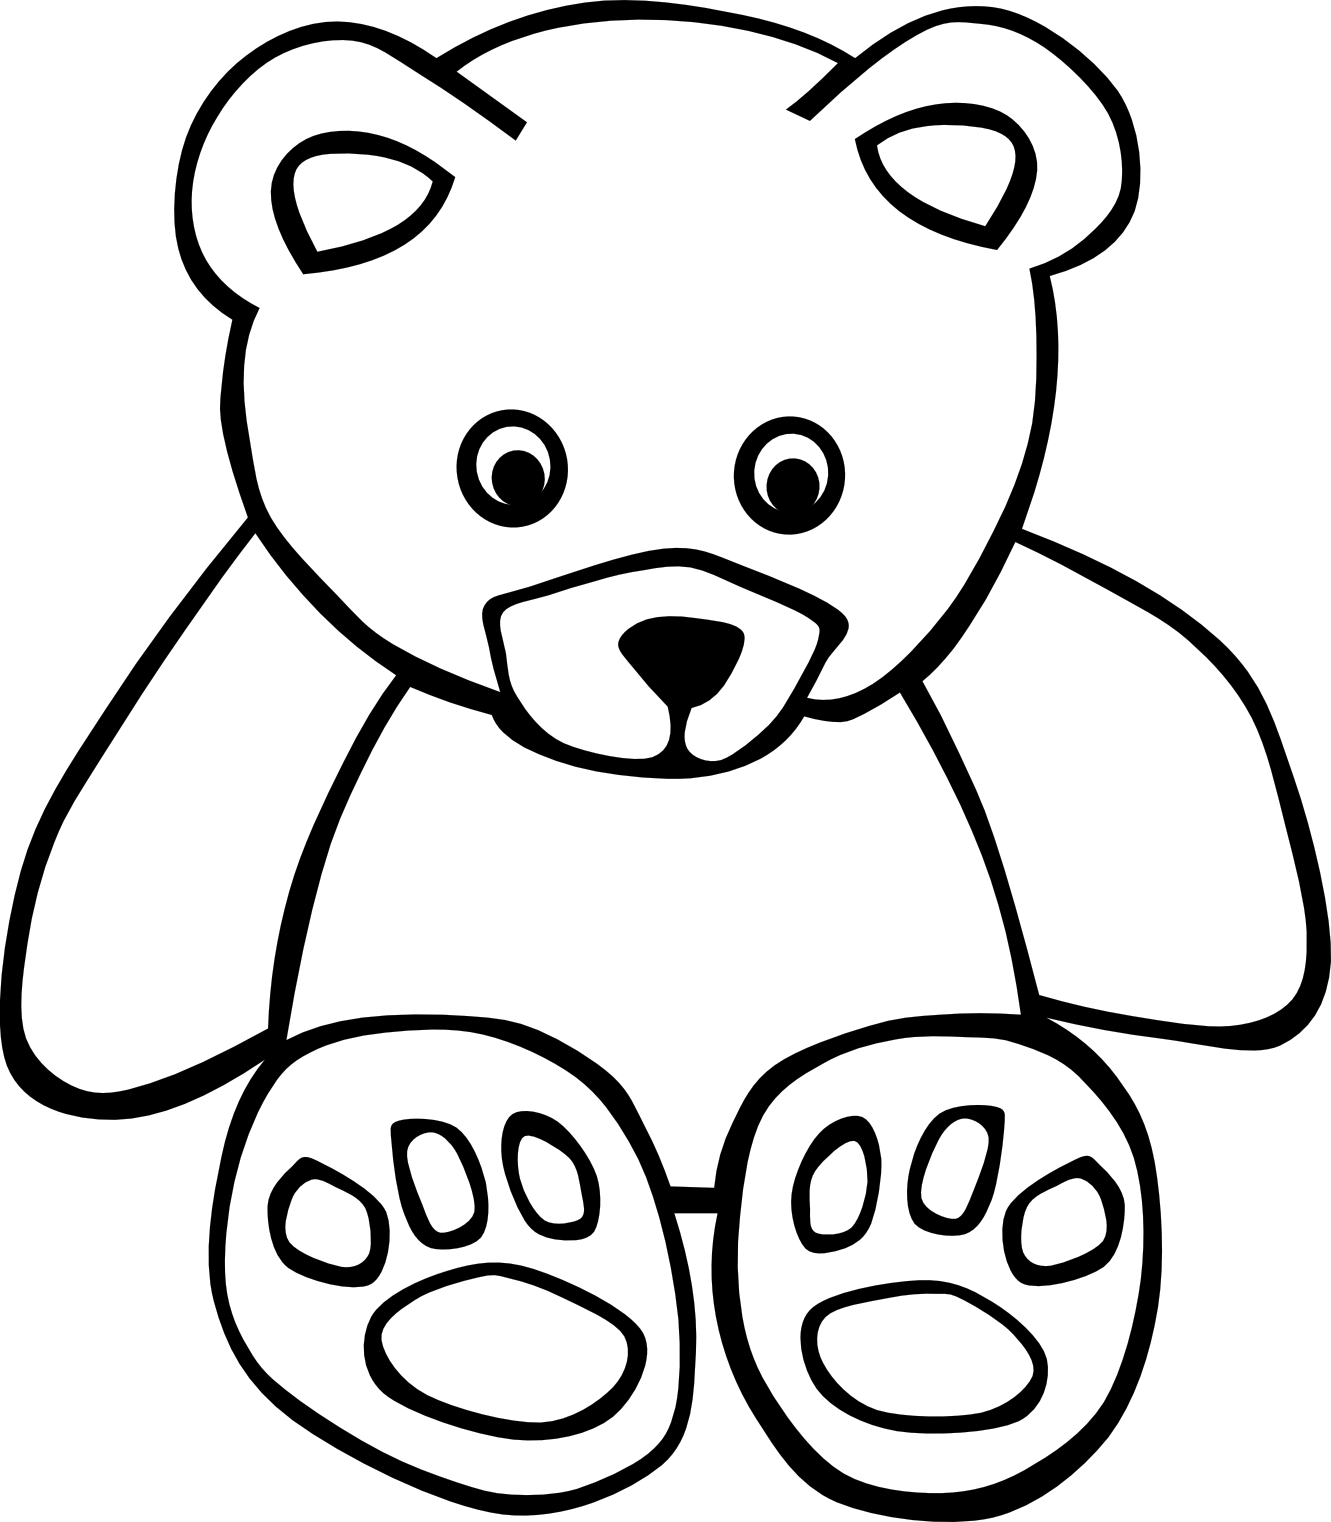 Stuffed animal reading clipart black and white.